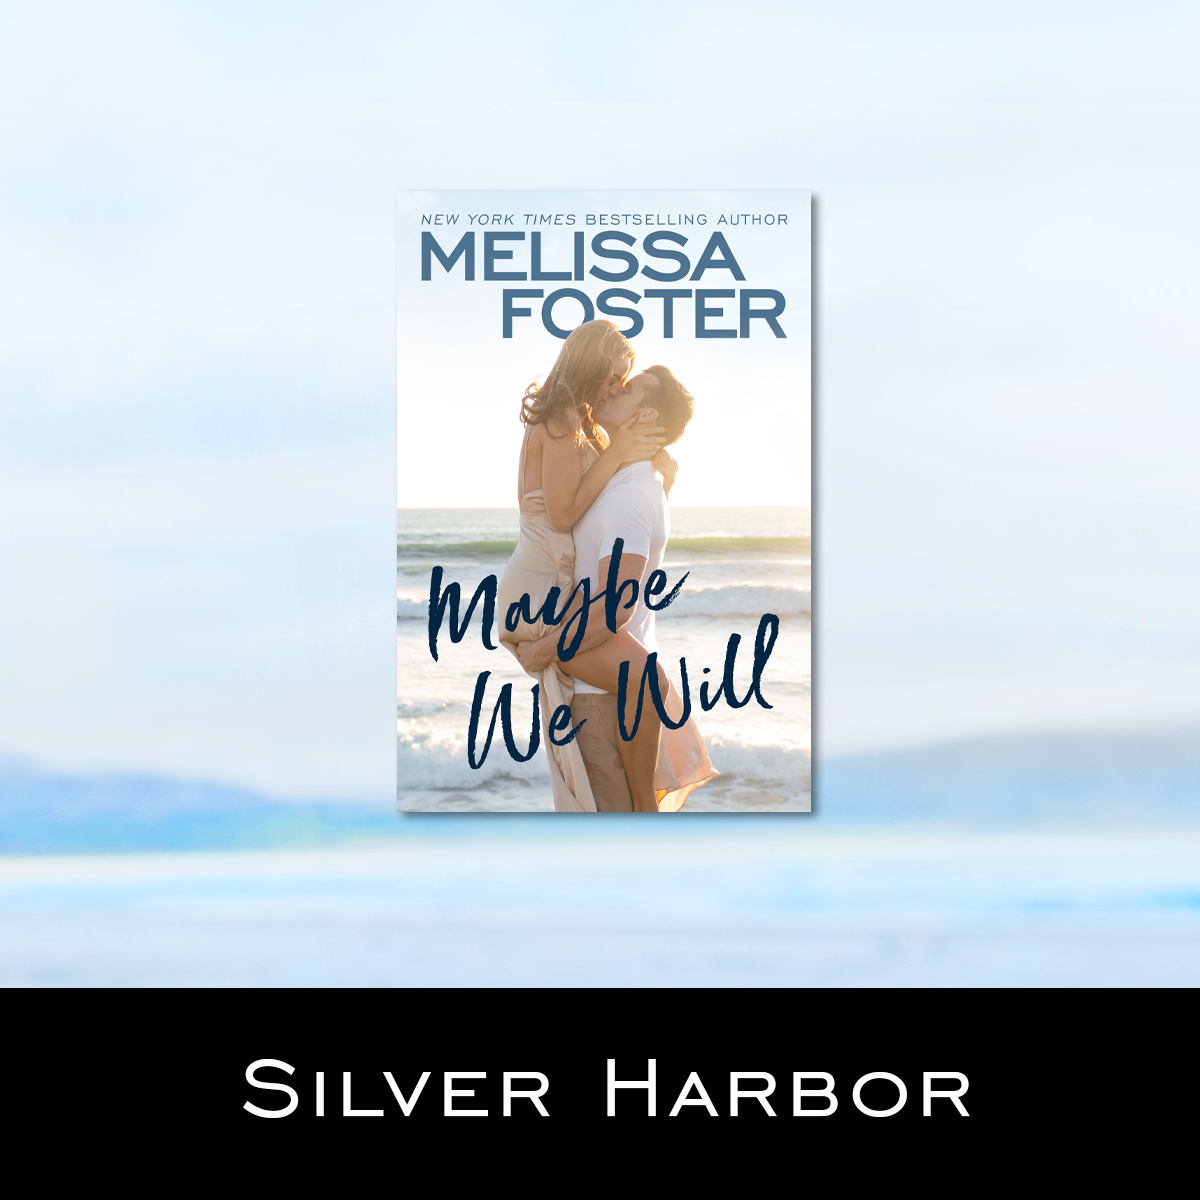 Silver Harbor series by Melissa Foster